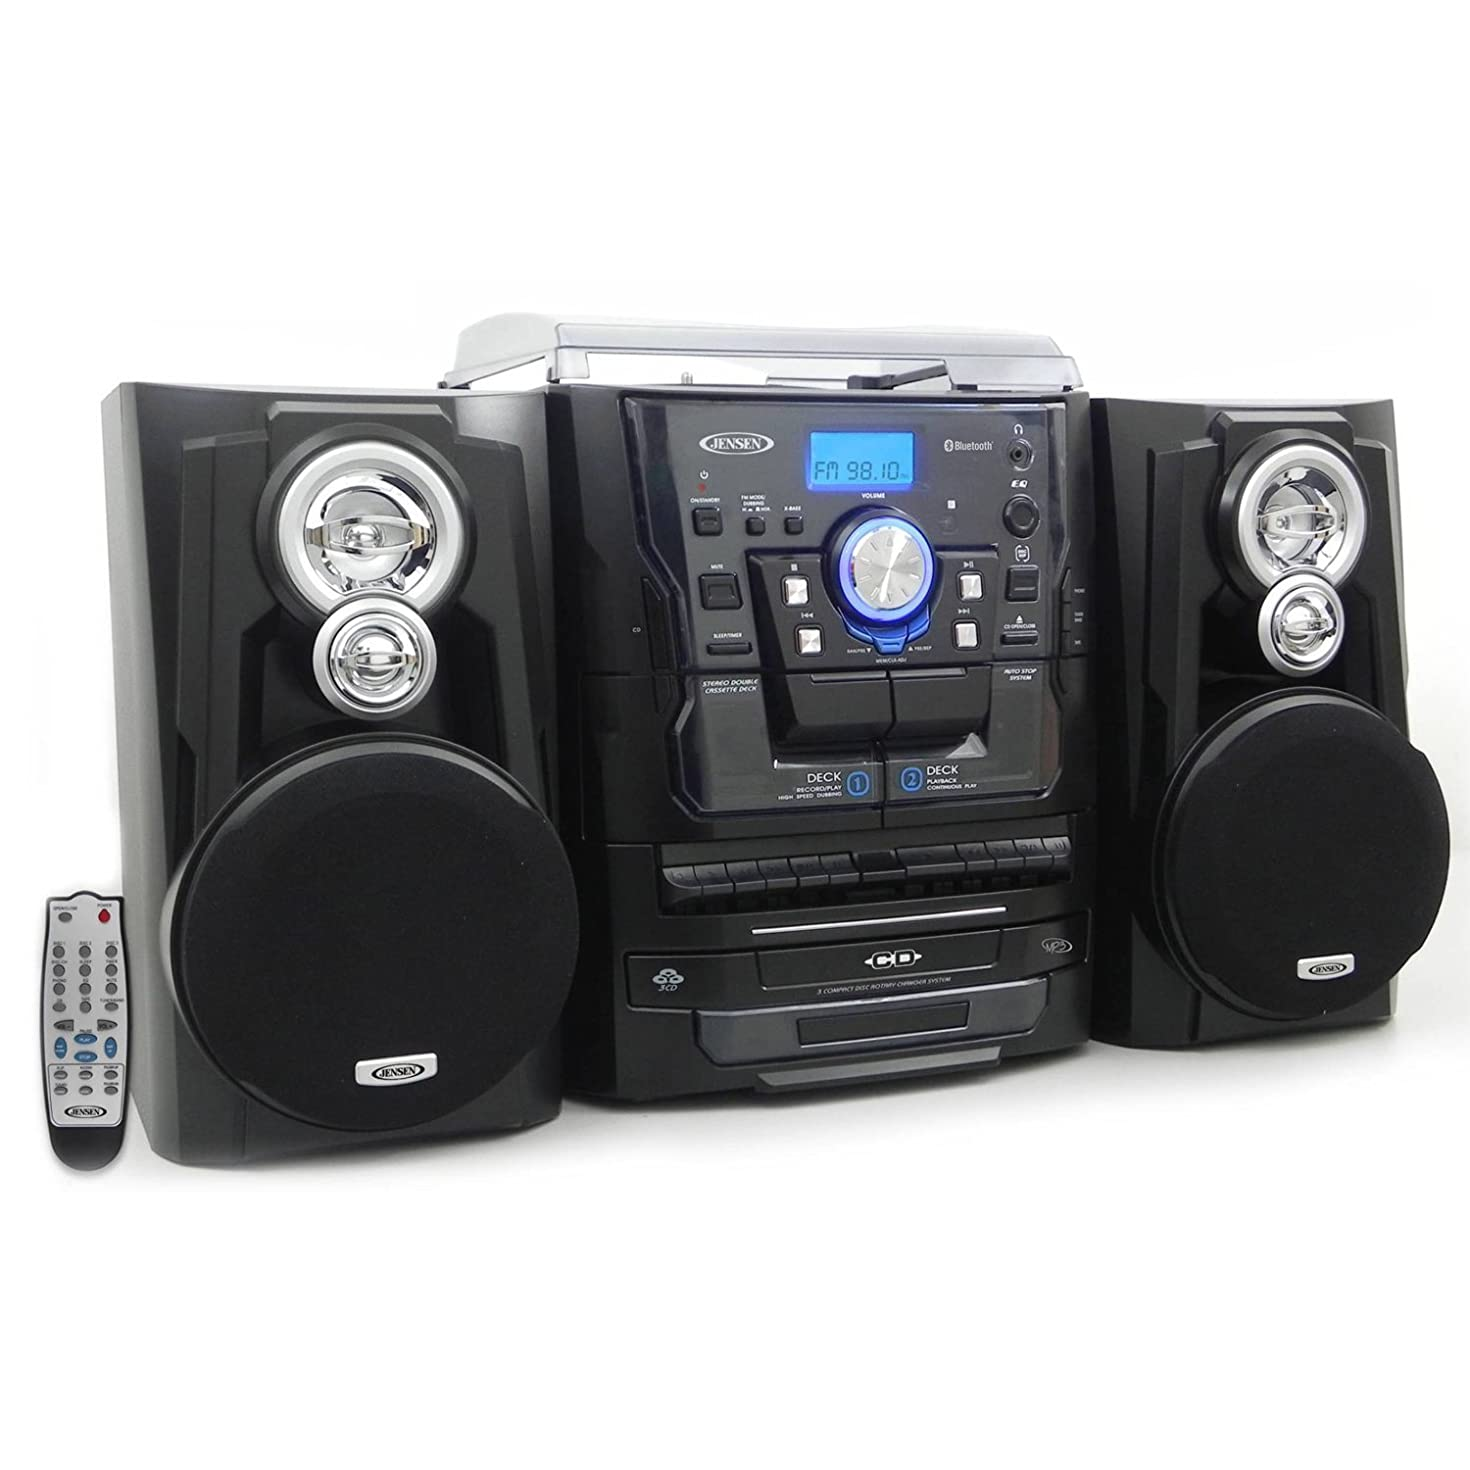 Jensen Bluetooth 3-Speed Stereo Turntable and 3 CD Changer with Dual Cassette Deck and AM/FM Radio & Remote Included